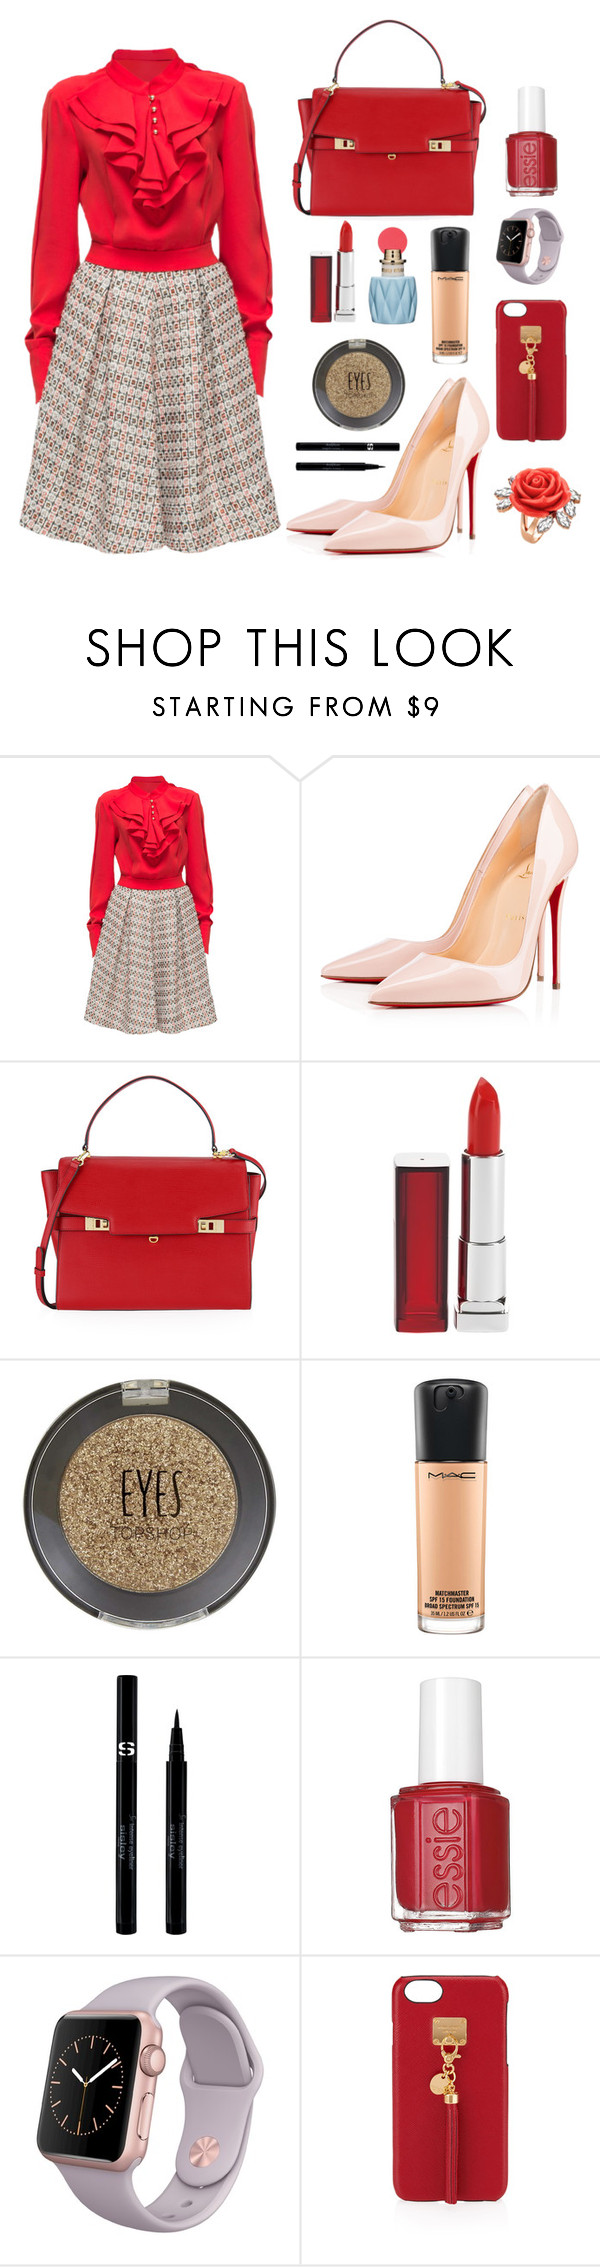 """Red Beauty"" by clarissag-2 ❤ liked on Polyvore featuring Lattori, Christian Louboutin, Henri Bendel, Maybelline, Miu Miu, Topshop, MAC Cosmetics, Sisley, Essie and Mawi"